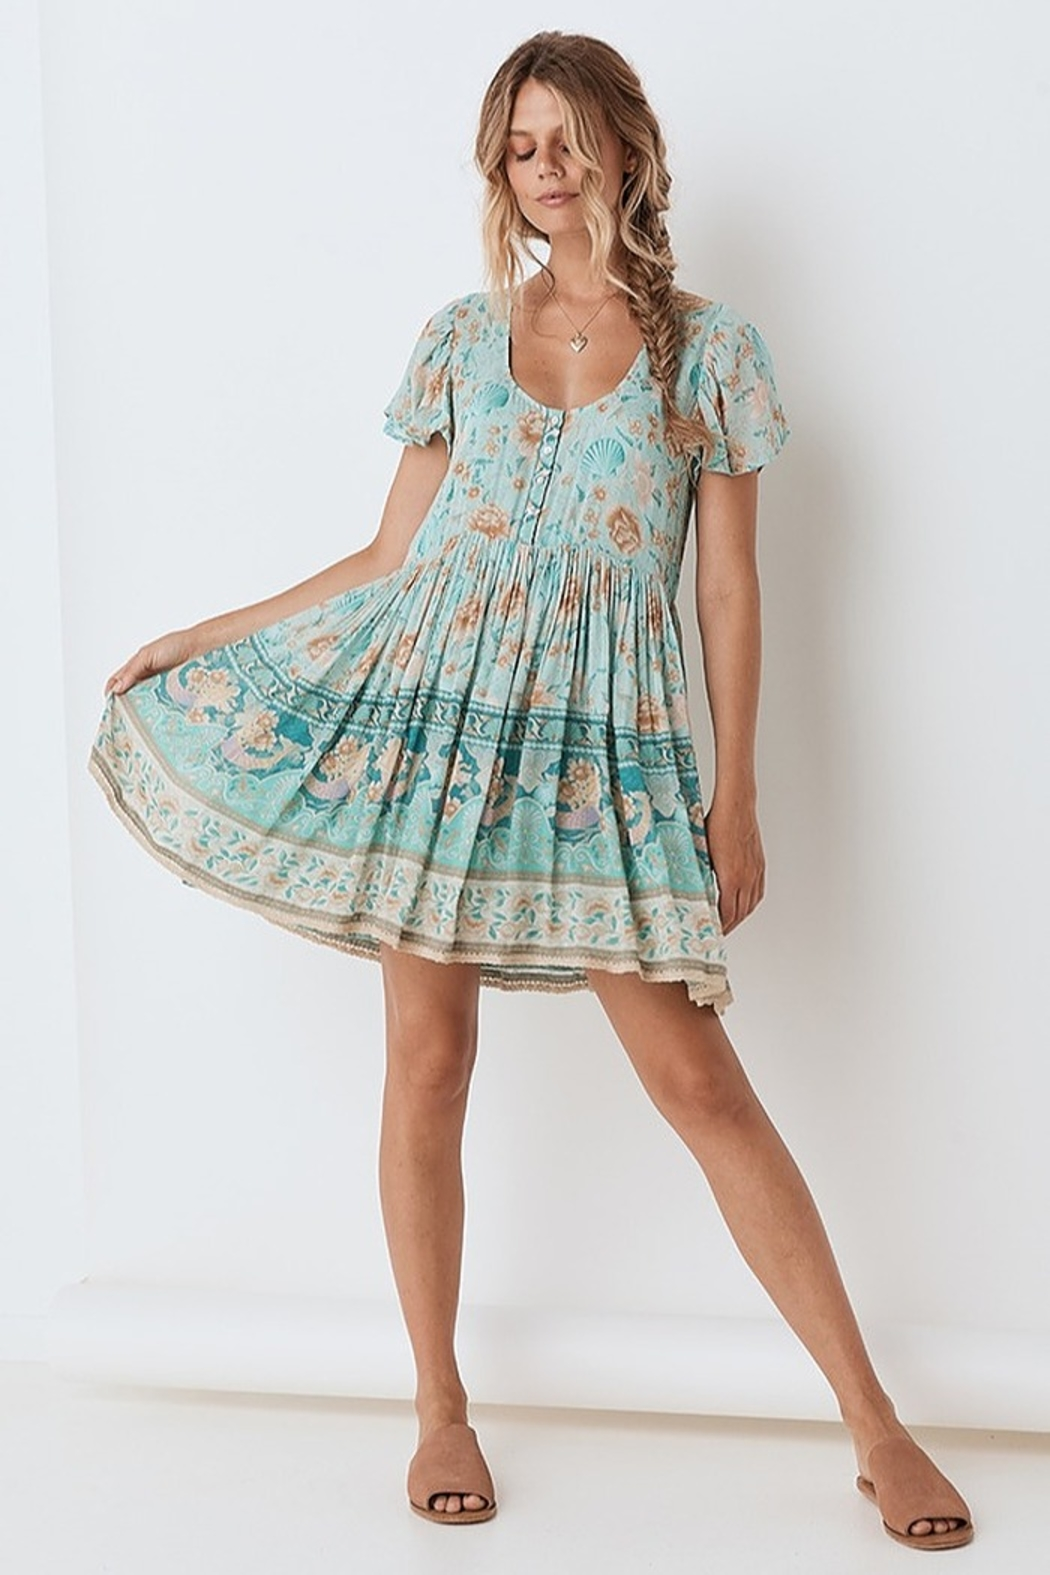 Spell & the Gypsy Collective Seashell Mini Dress - Seafoam - Side Cropped Image